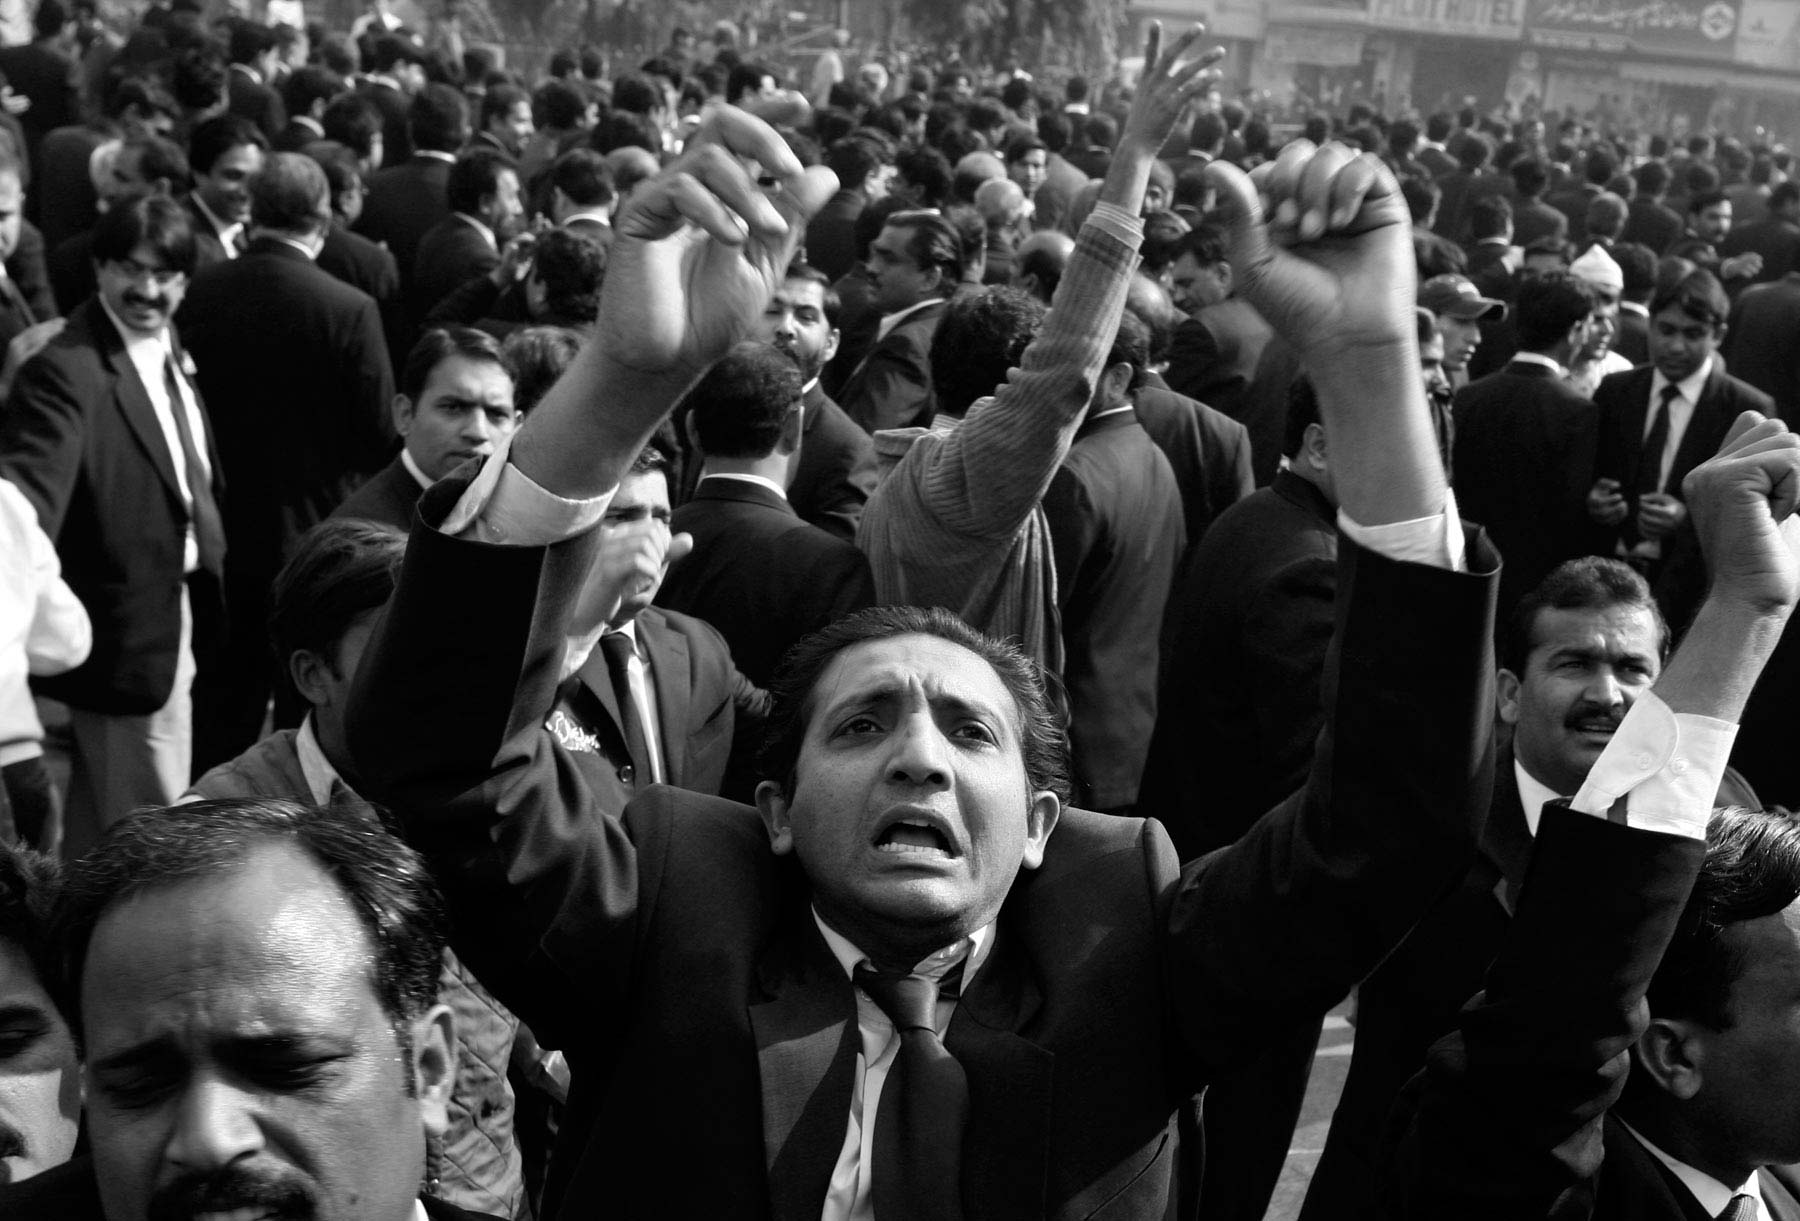 Pakistan Lawyer shouts during an anti-government protest. Lahore, Pakistan